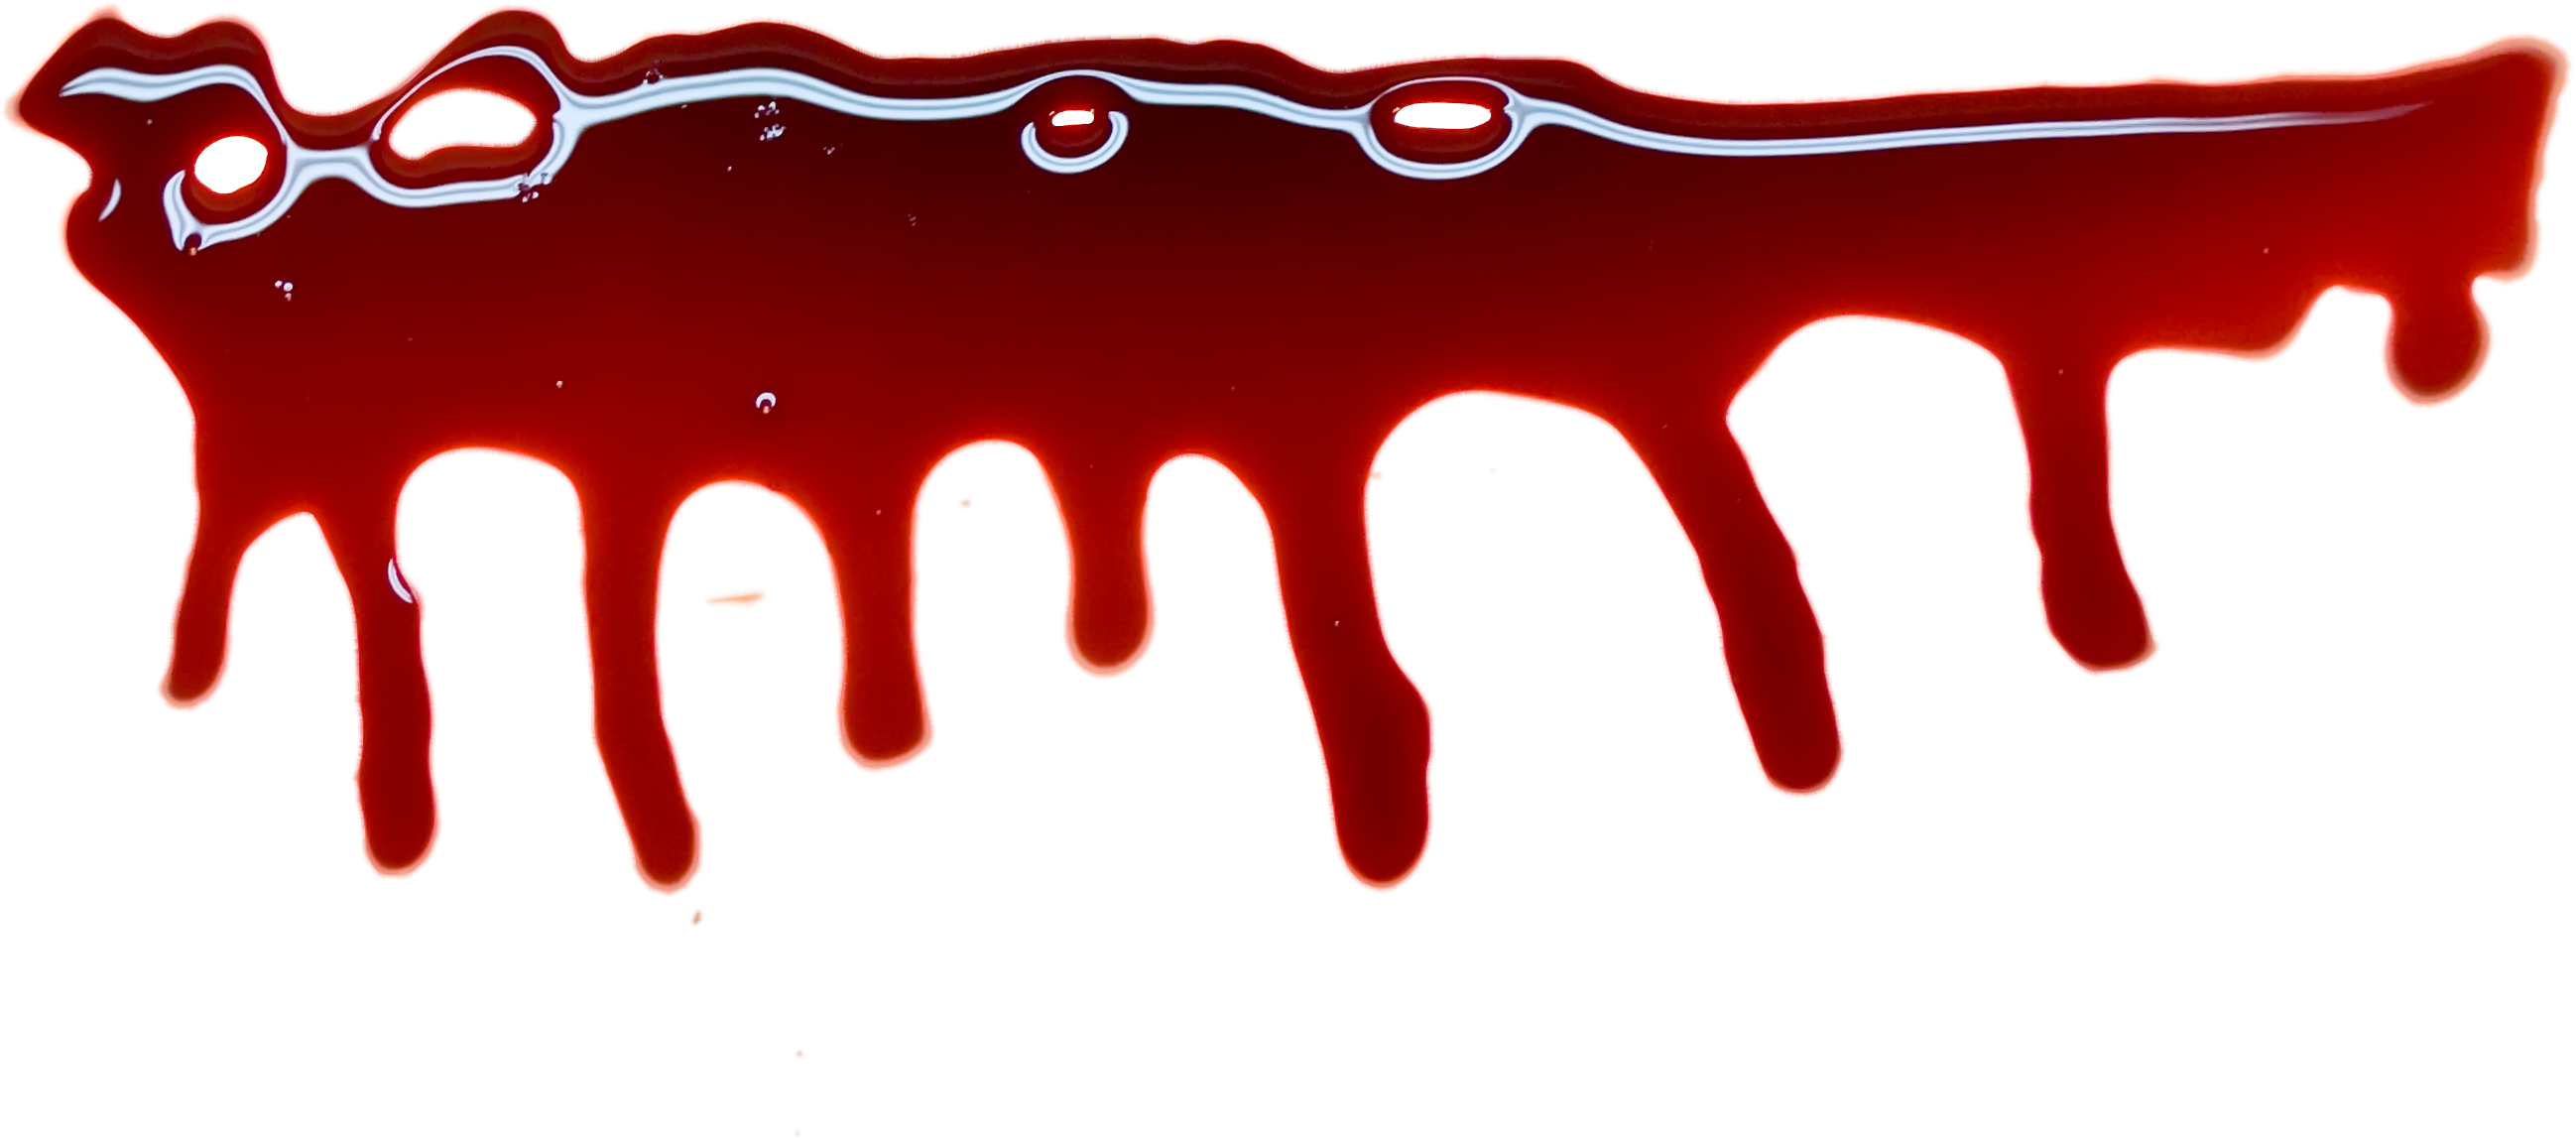 Blood drip png. Images free download splashes